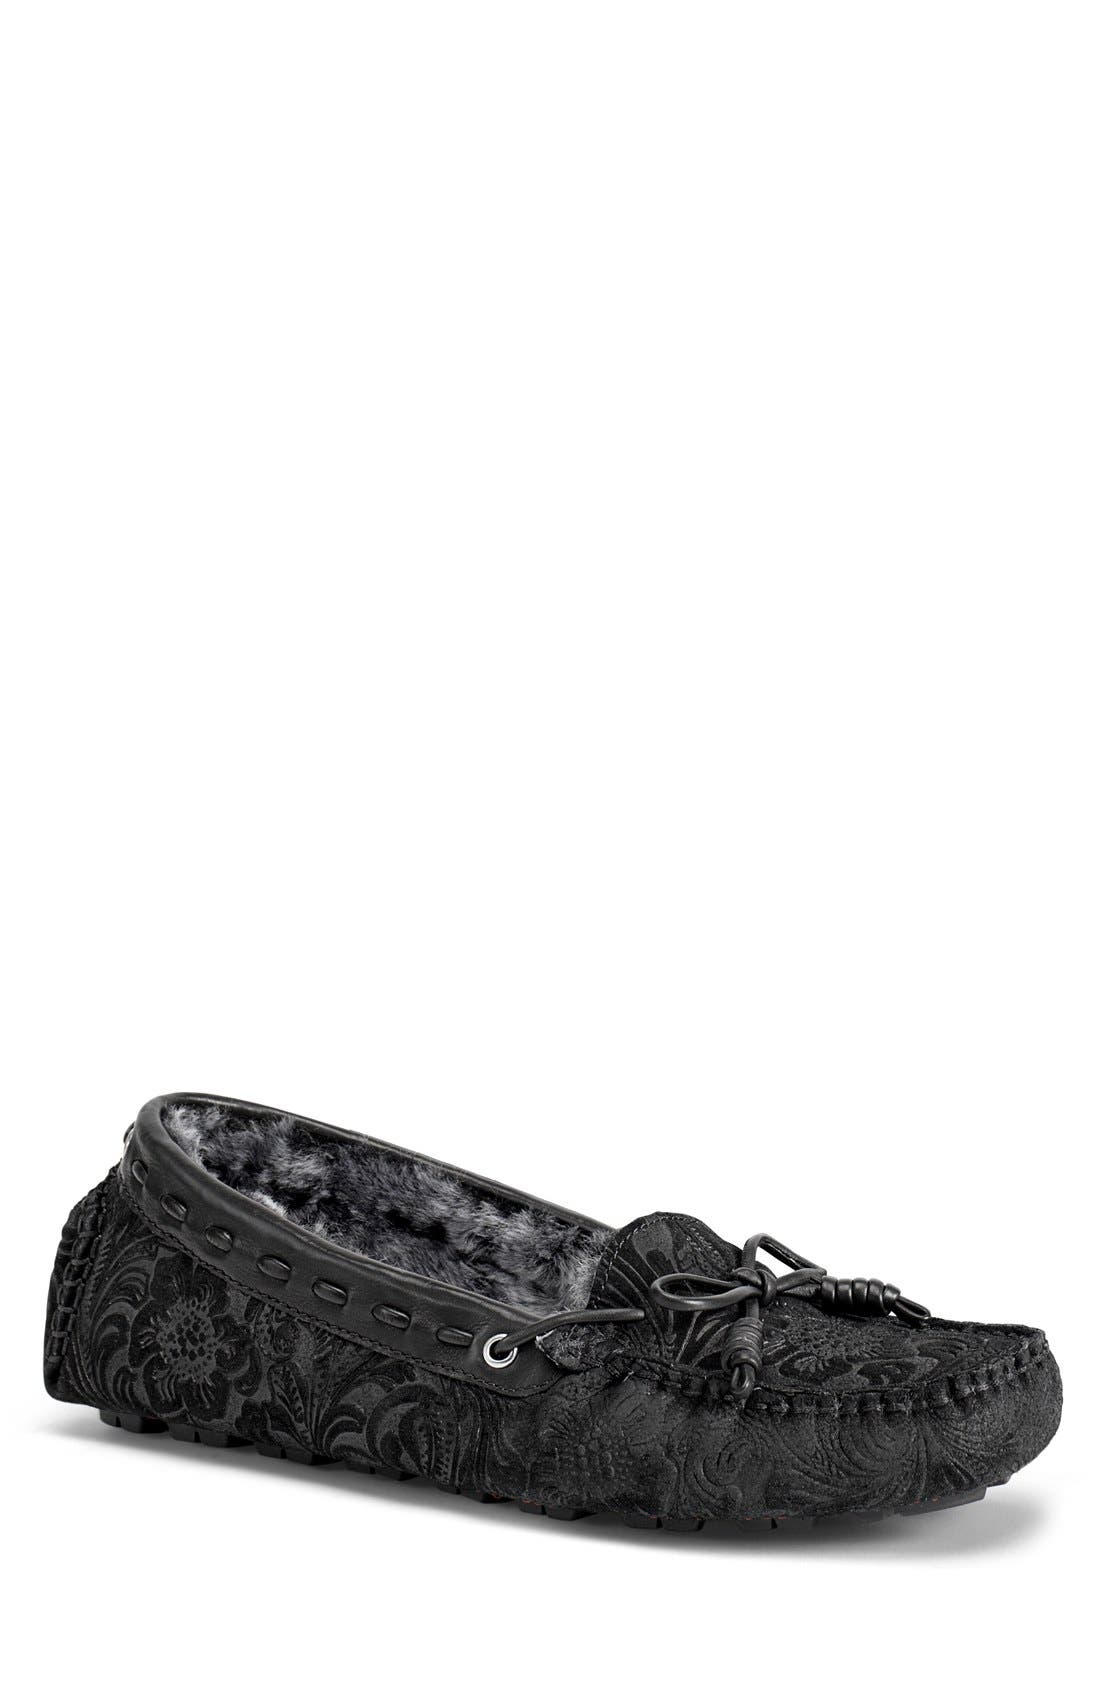 'Sophia' Genuine Shearling Lined Driving Loafer, Main, color, 008